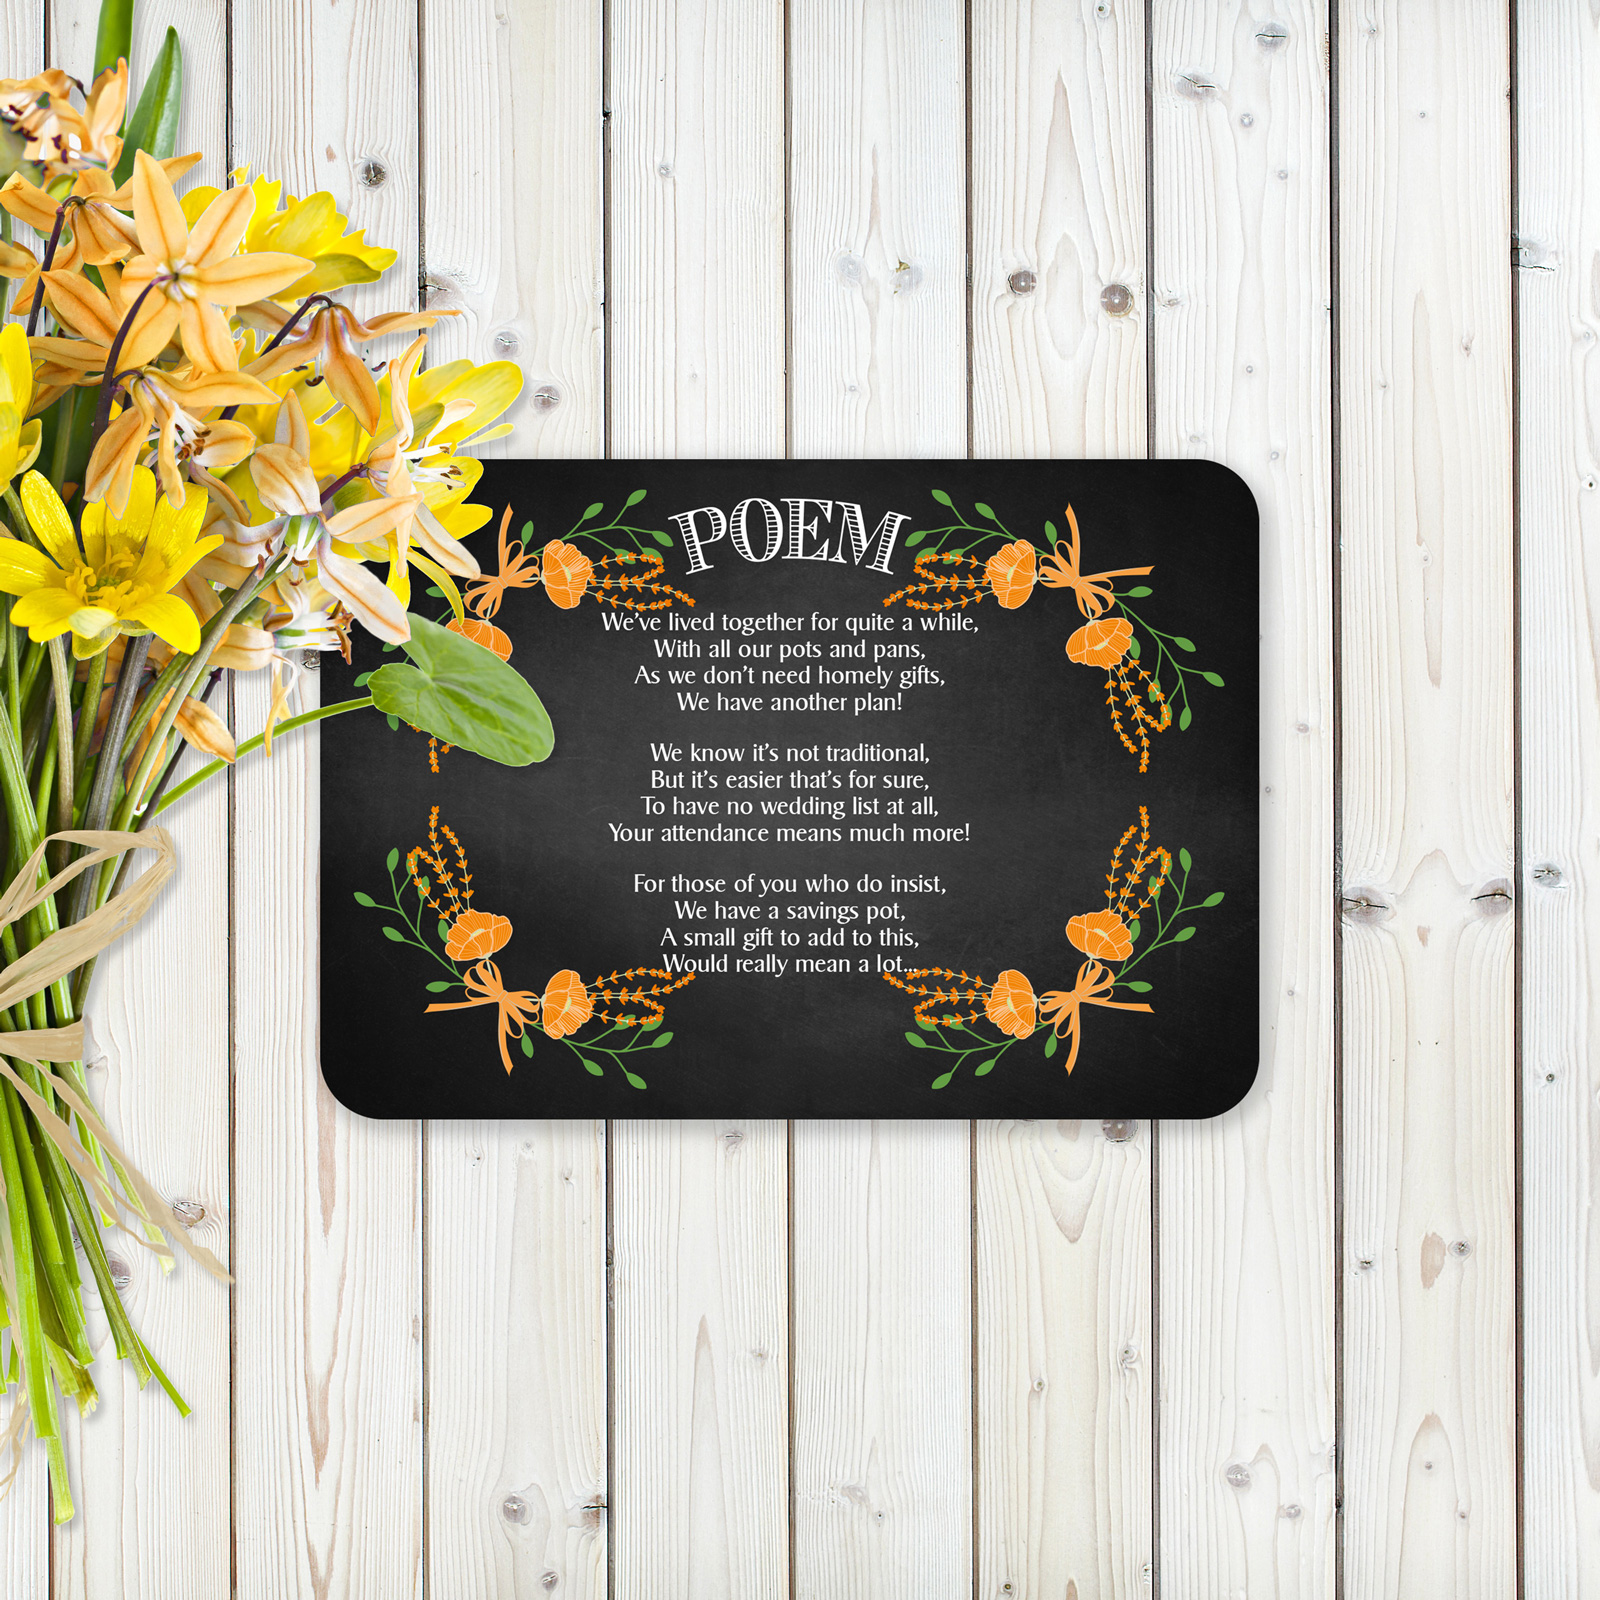 Floral Fantasy Orange on Chalkboard - Poem Card